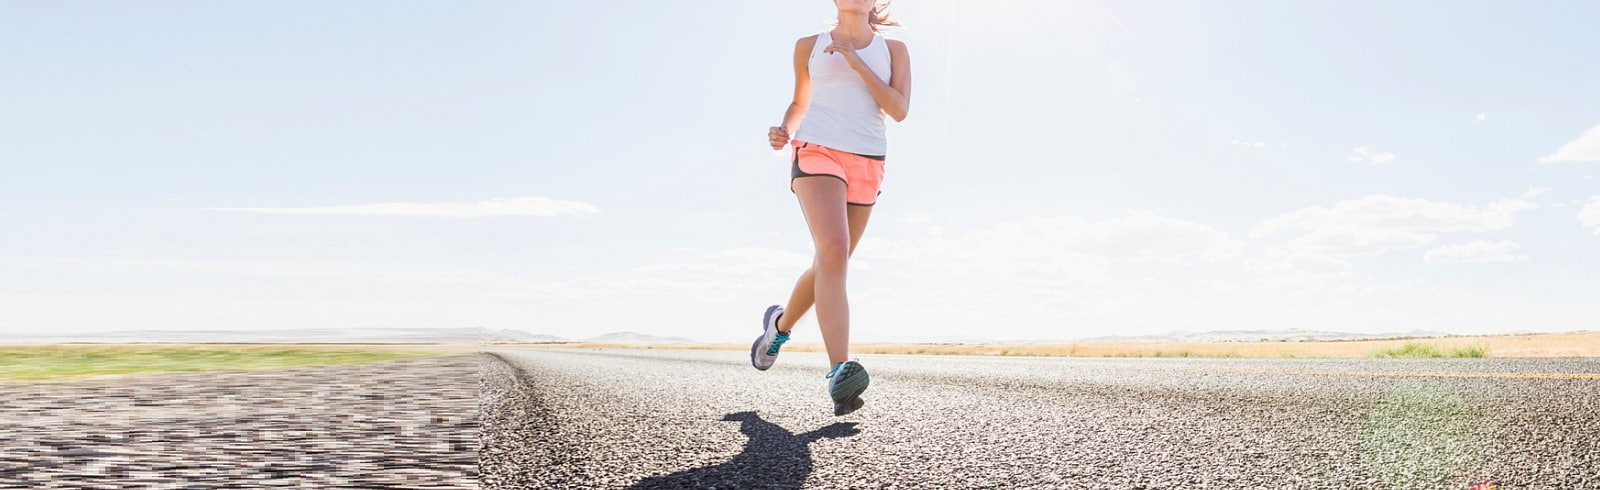 Caucasian woman running on remote road